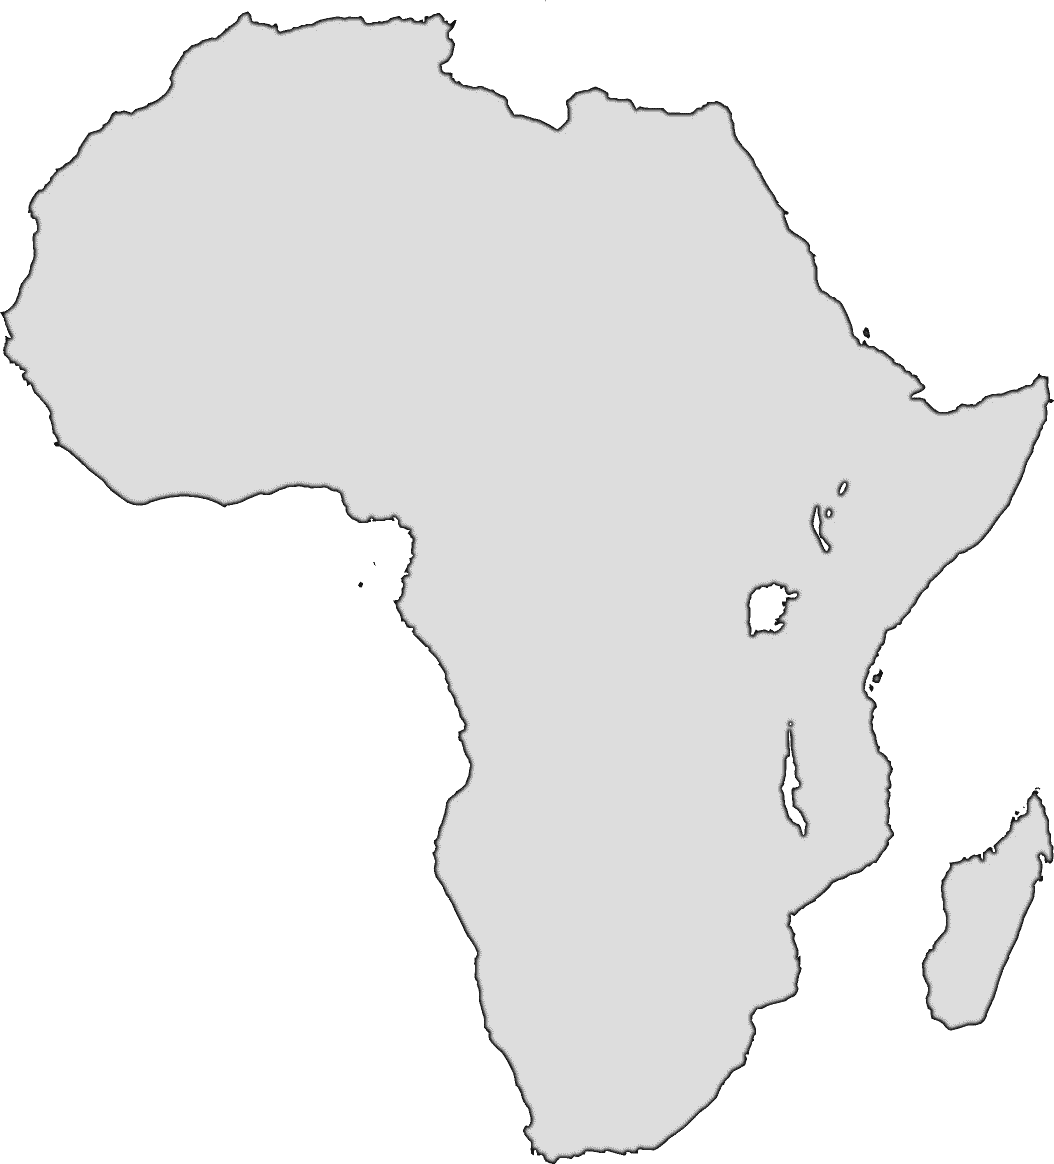 Africa clipart black and white Outline  Hd X Map